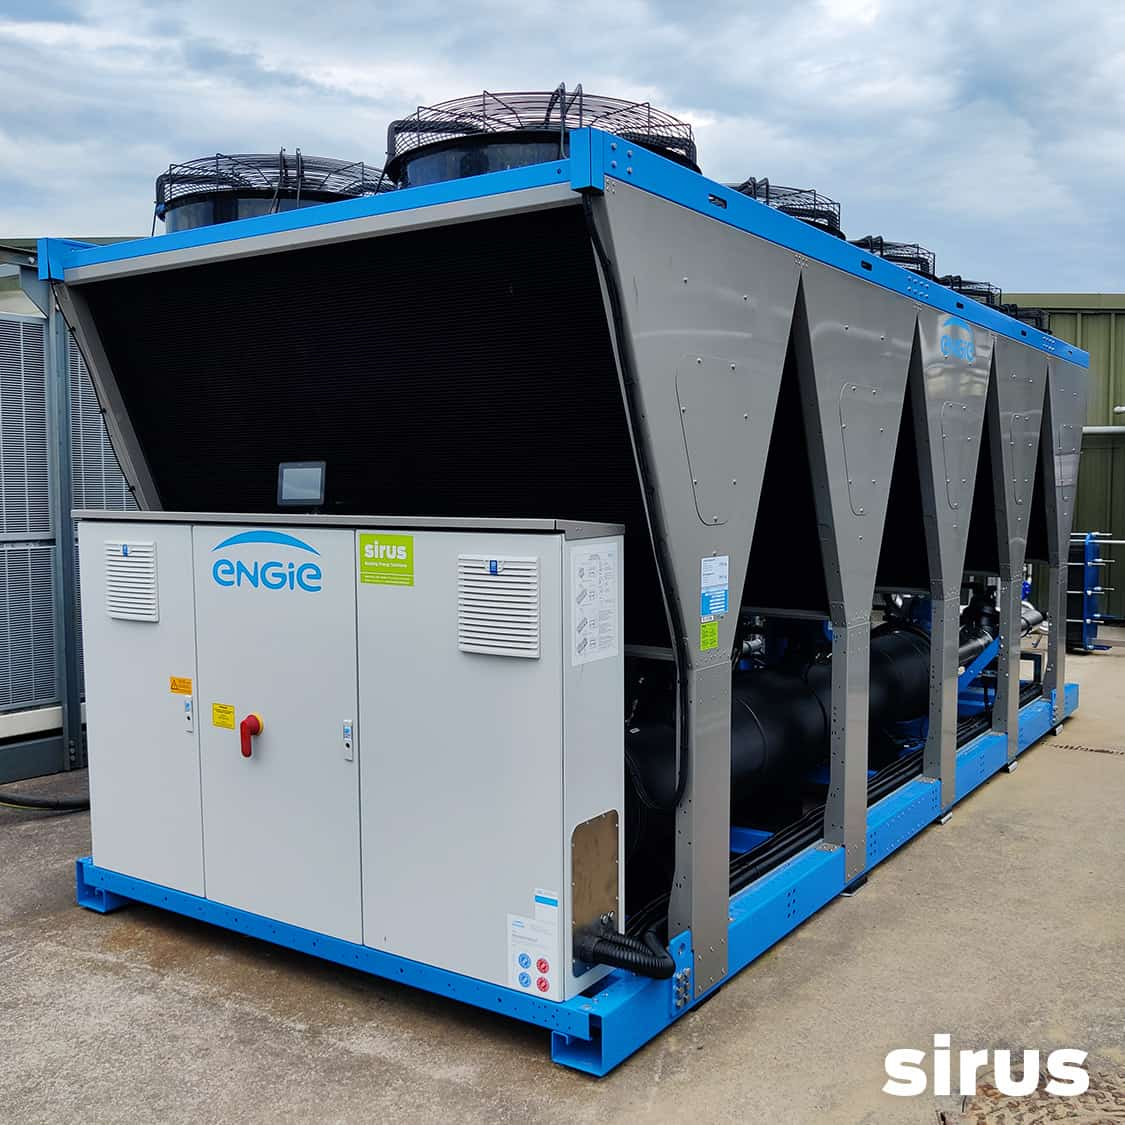 Turbocor Chiller at Weener Plastics commissioned by Sirus